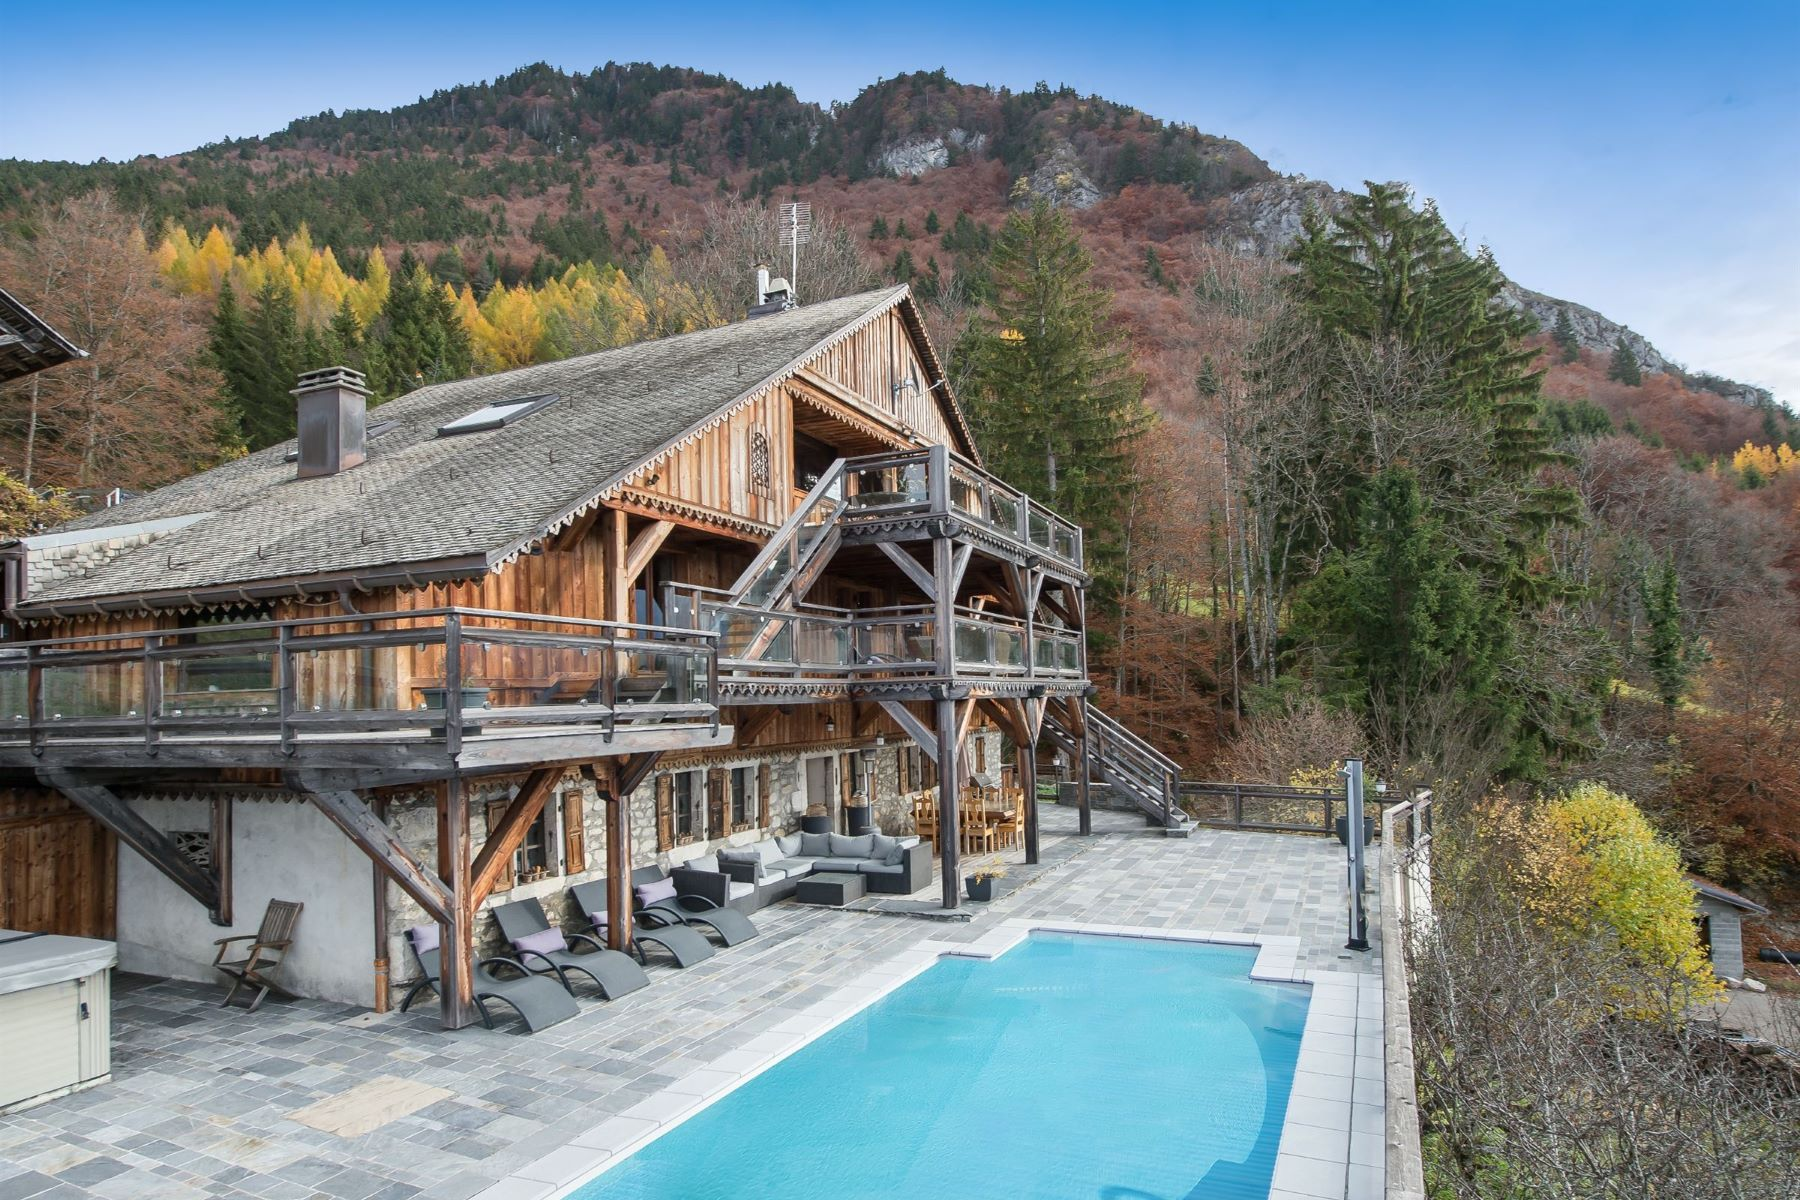 Single Family Home for Sale at House Chevenoz, Rhone-Alpes, 74500 France